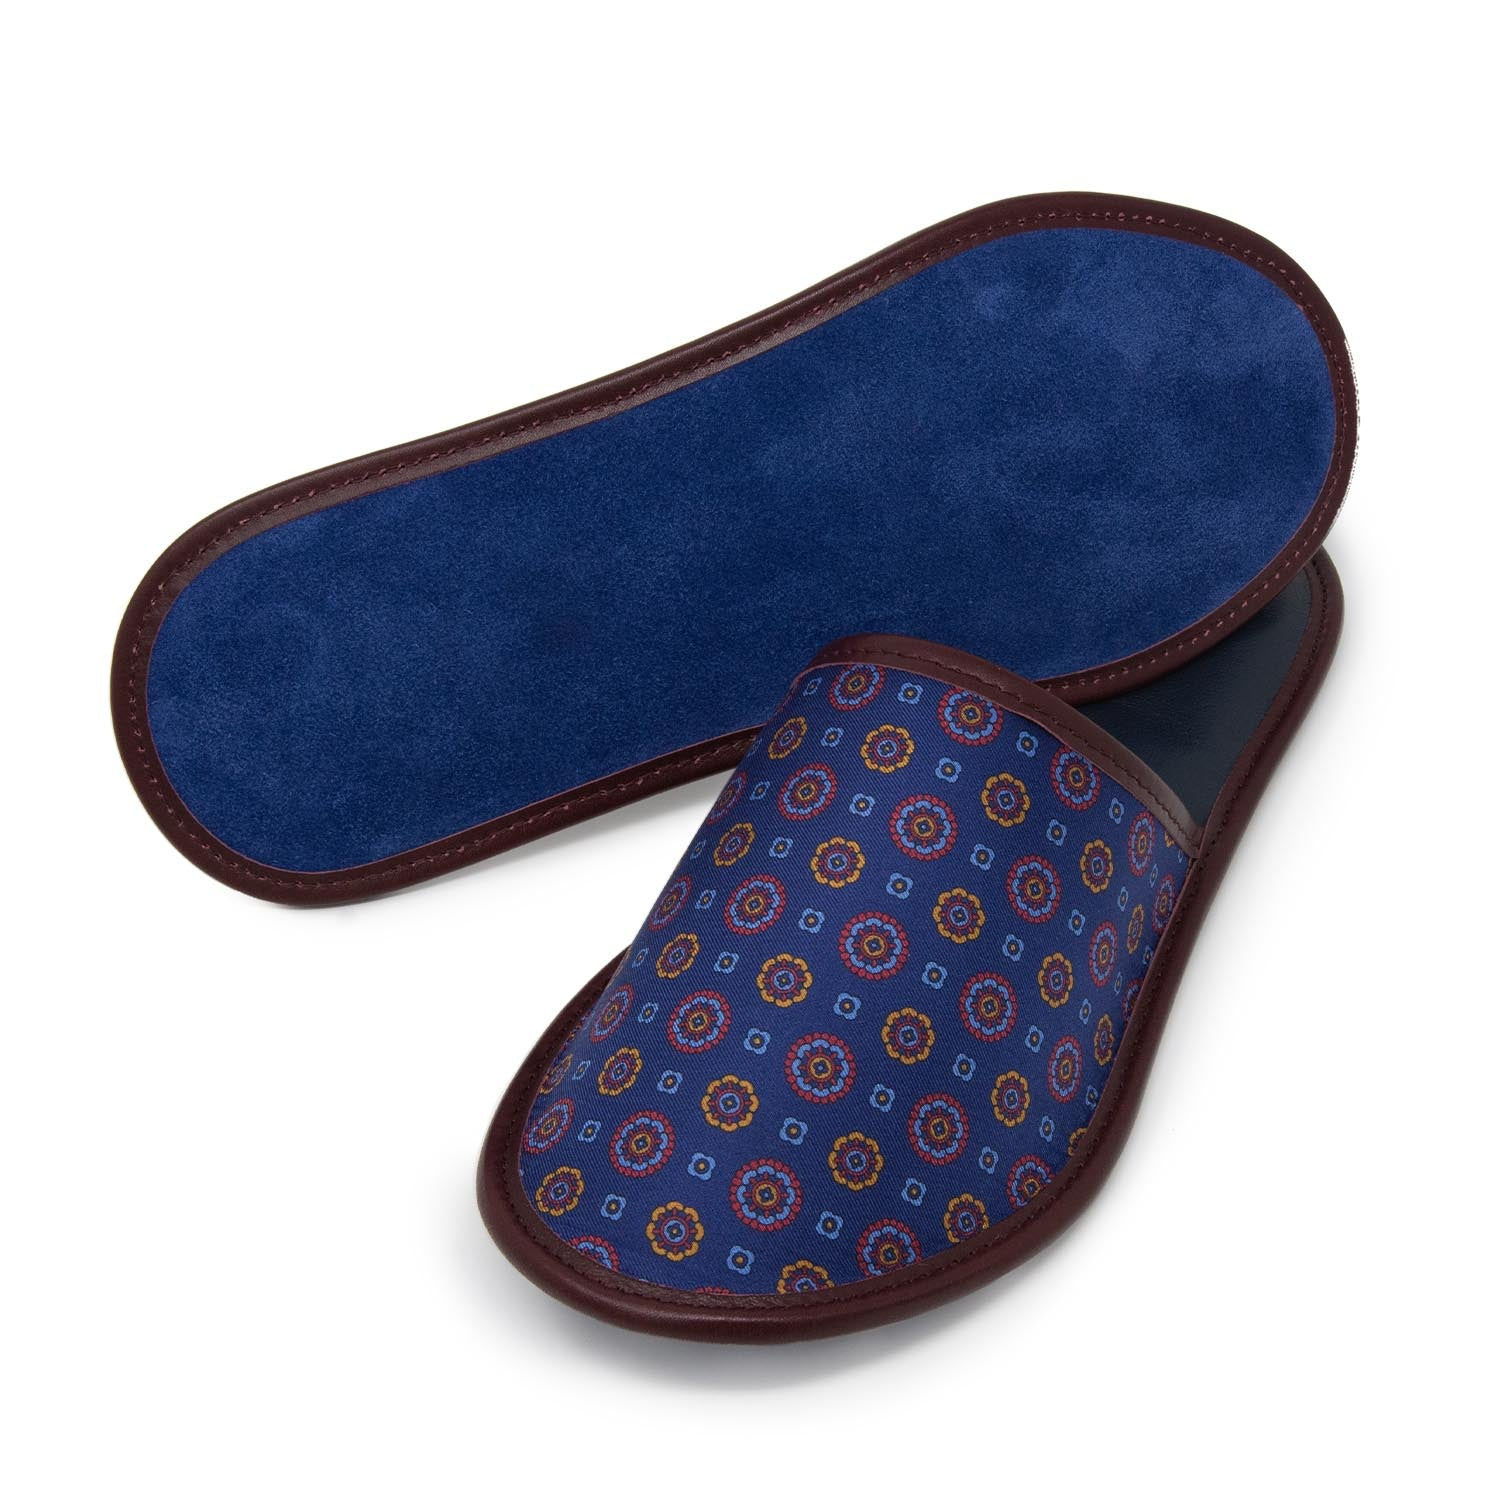 Serà fine silk - Blue Silk & Leather Slippers